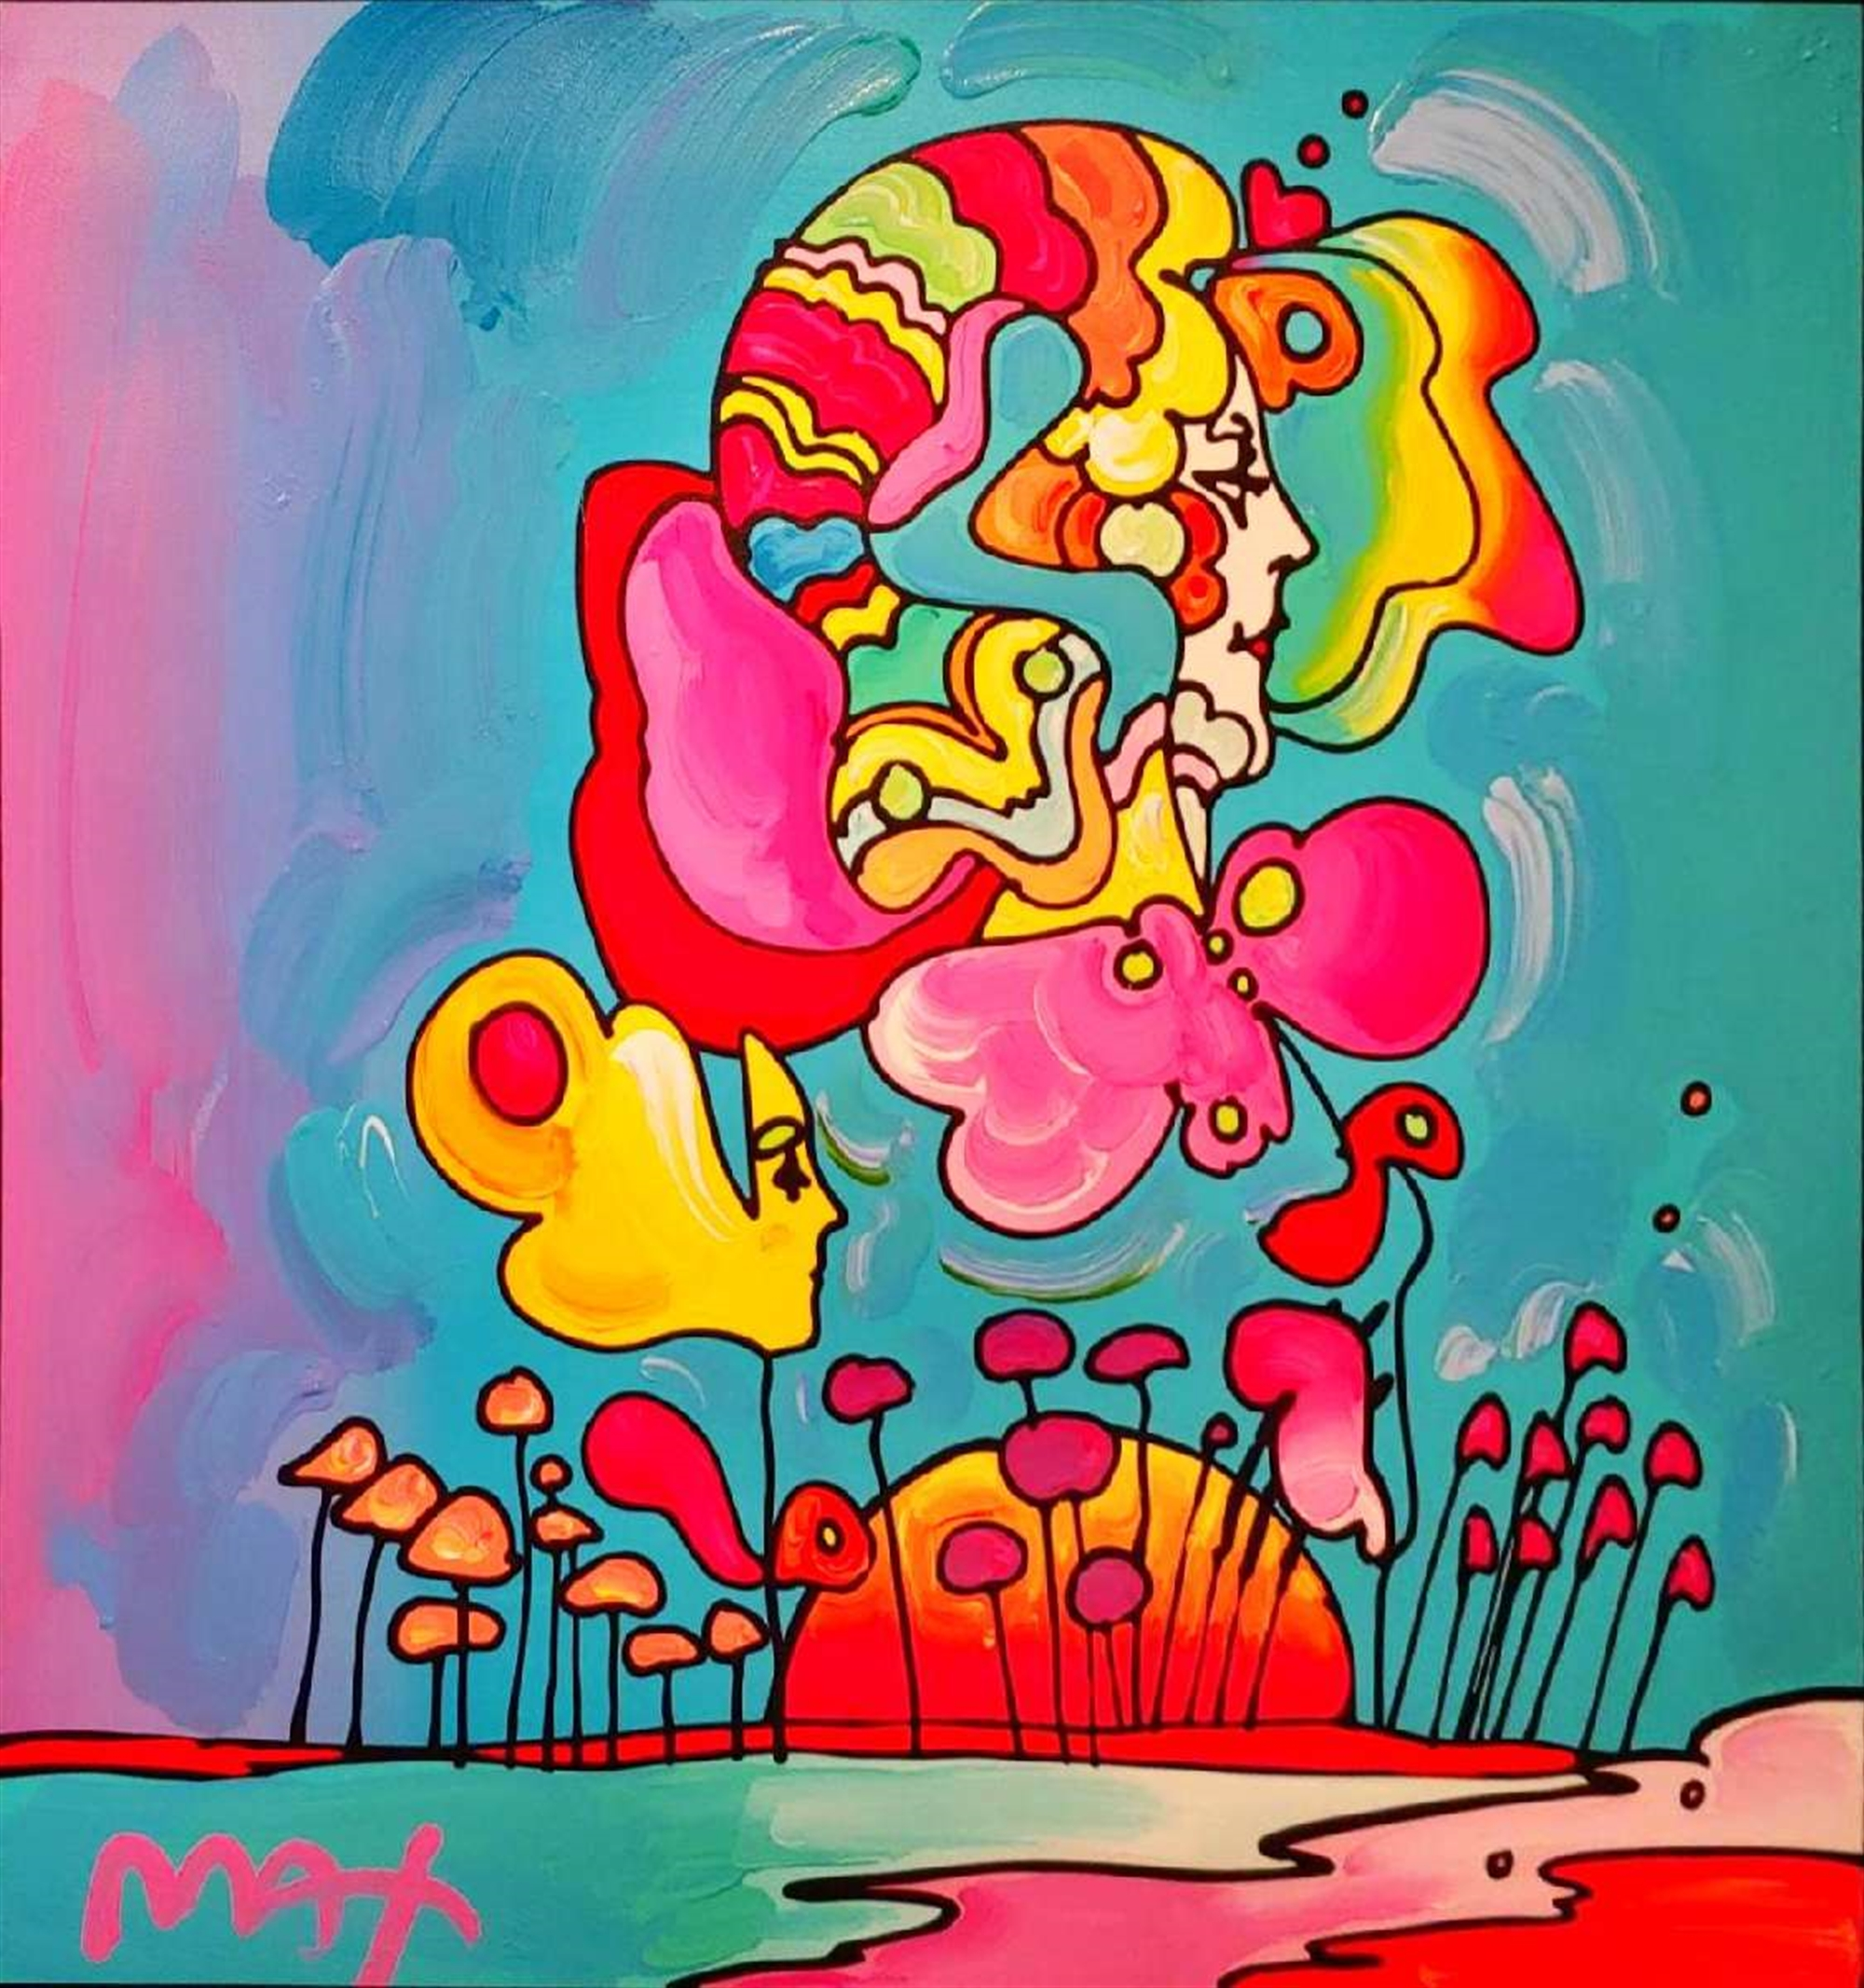 FLOWER FACE by Peter Max